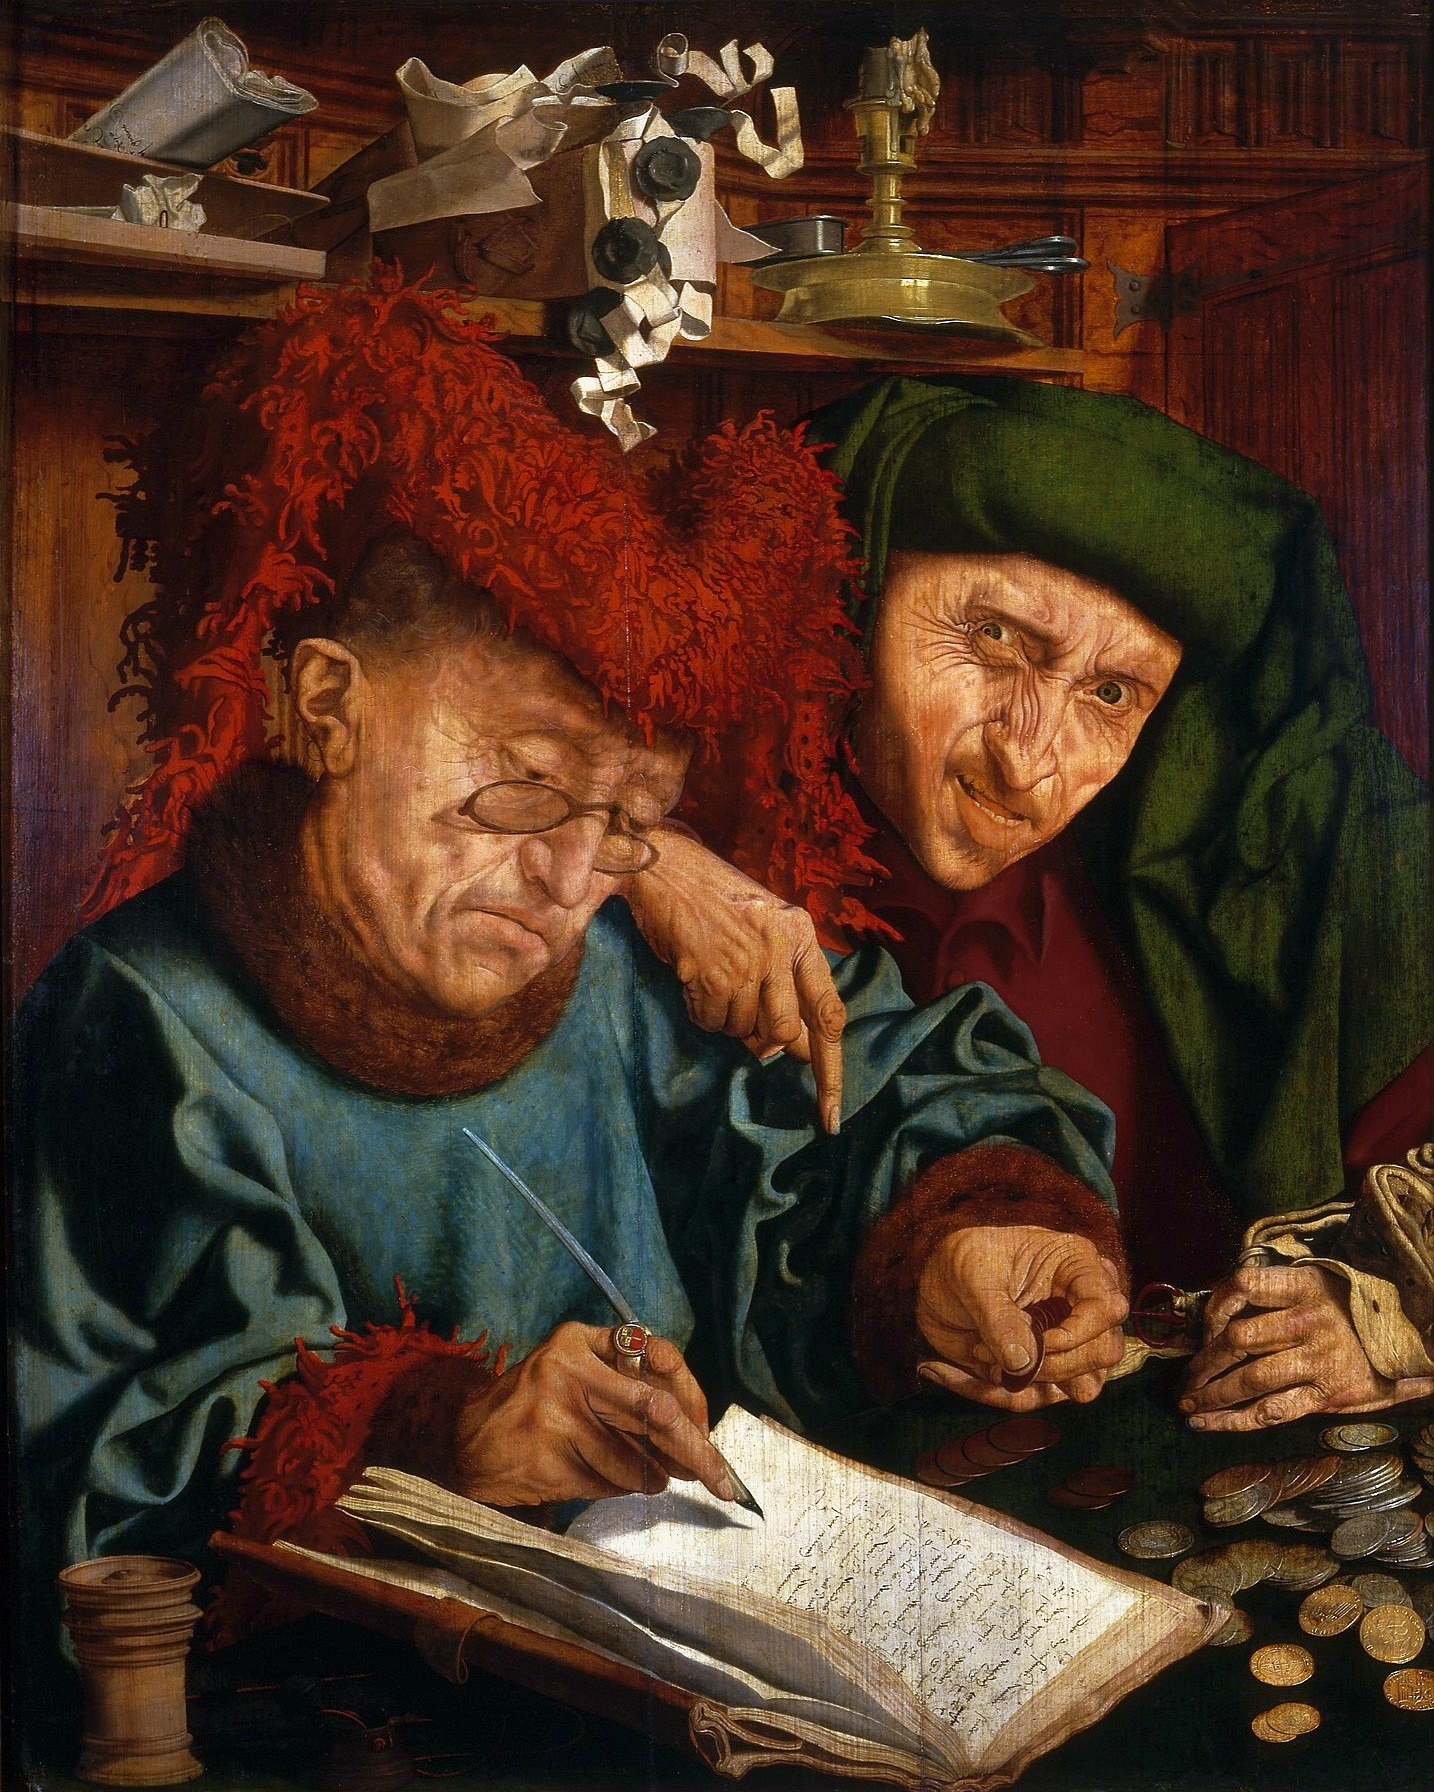 Reymerswaele Two tax collectors